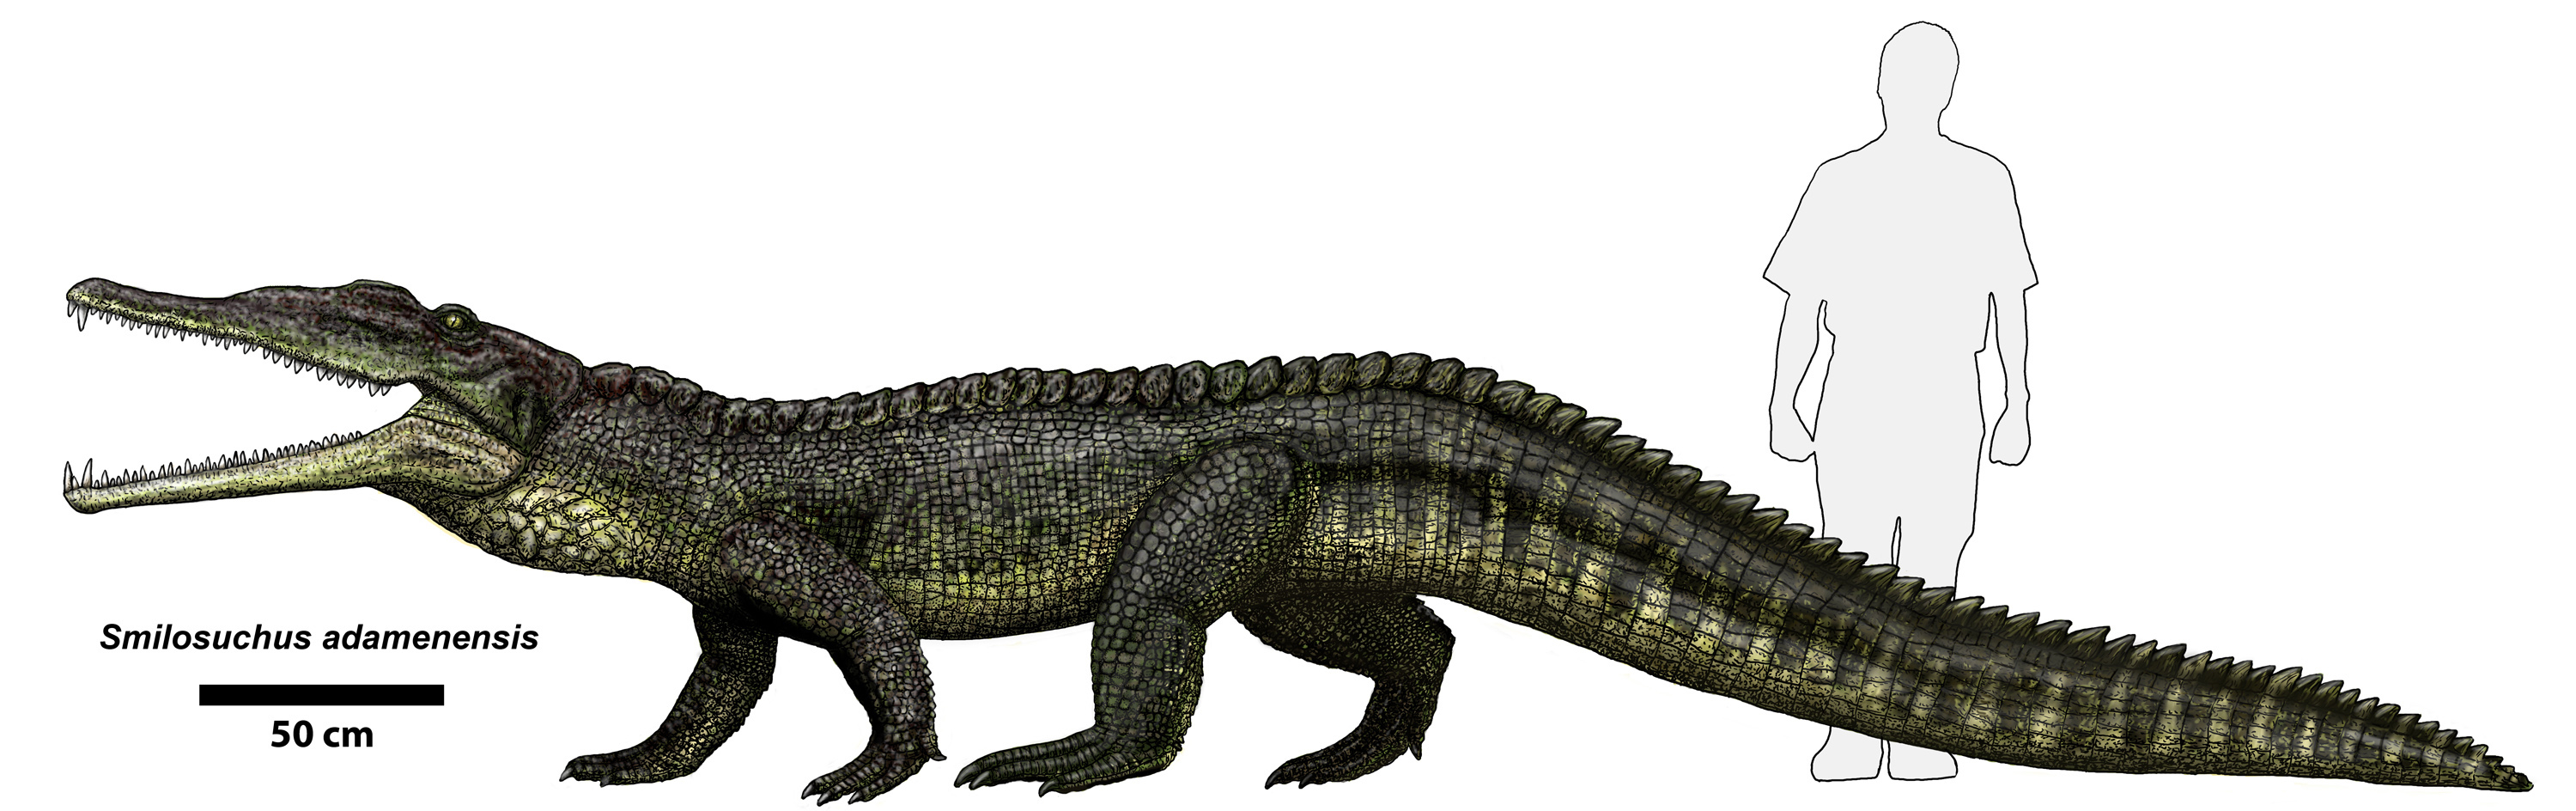 http://upload.wikimedia.org/wikipedia/commons/0/06/Smilosuchus_adamanensis.jpg